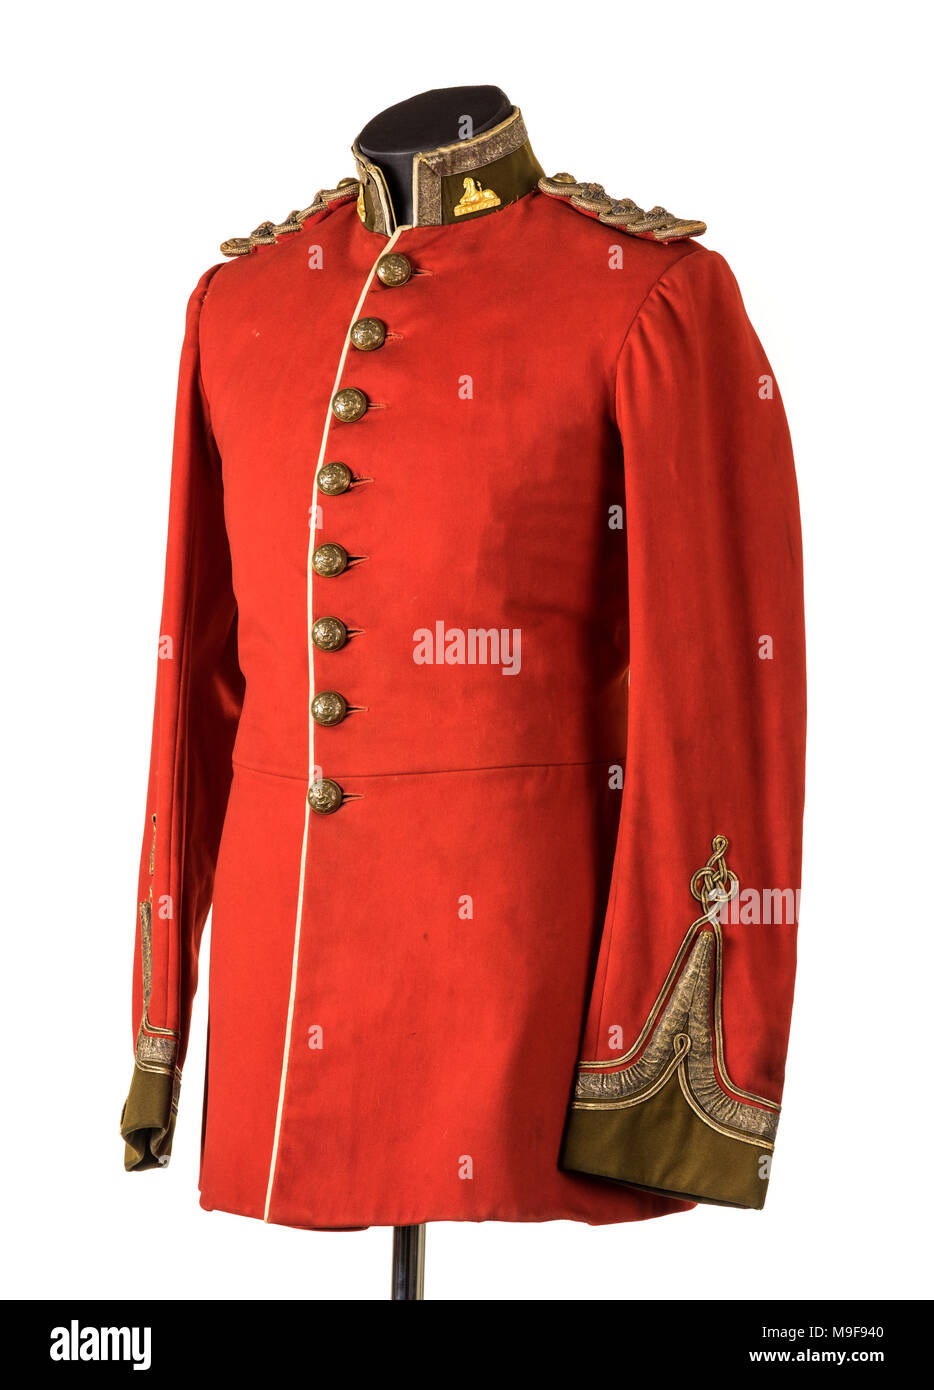 Victorian British Army Officer's scarlet uniform of the South Wales Borderers (24th Regiment of Foot), used during the Zulu War of 1879. - Stock Image